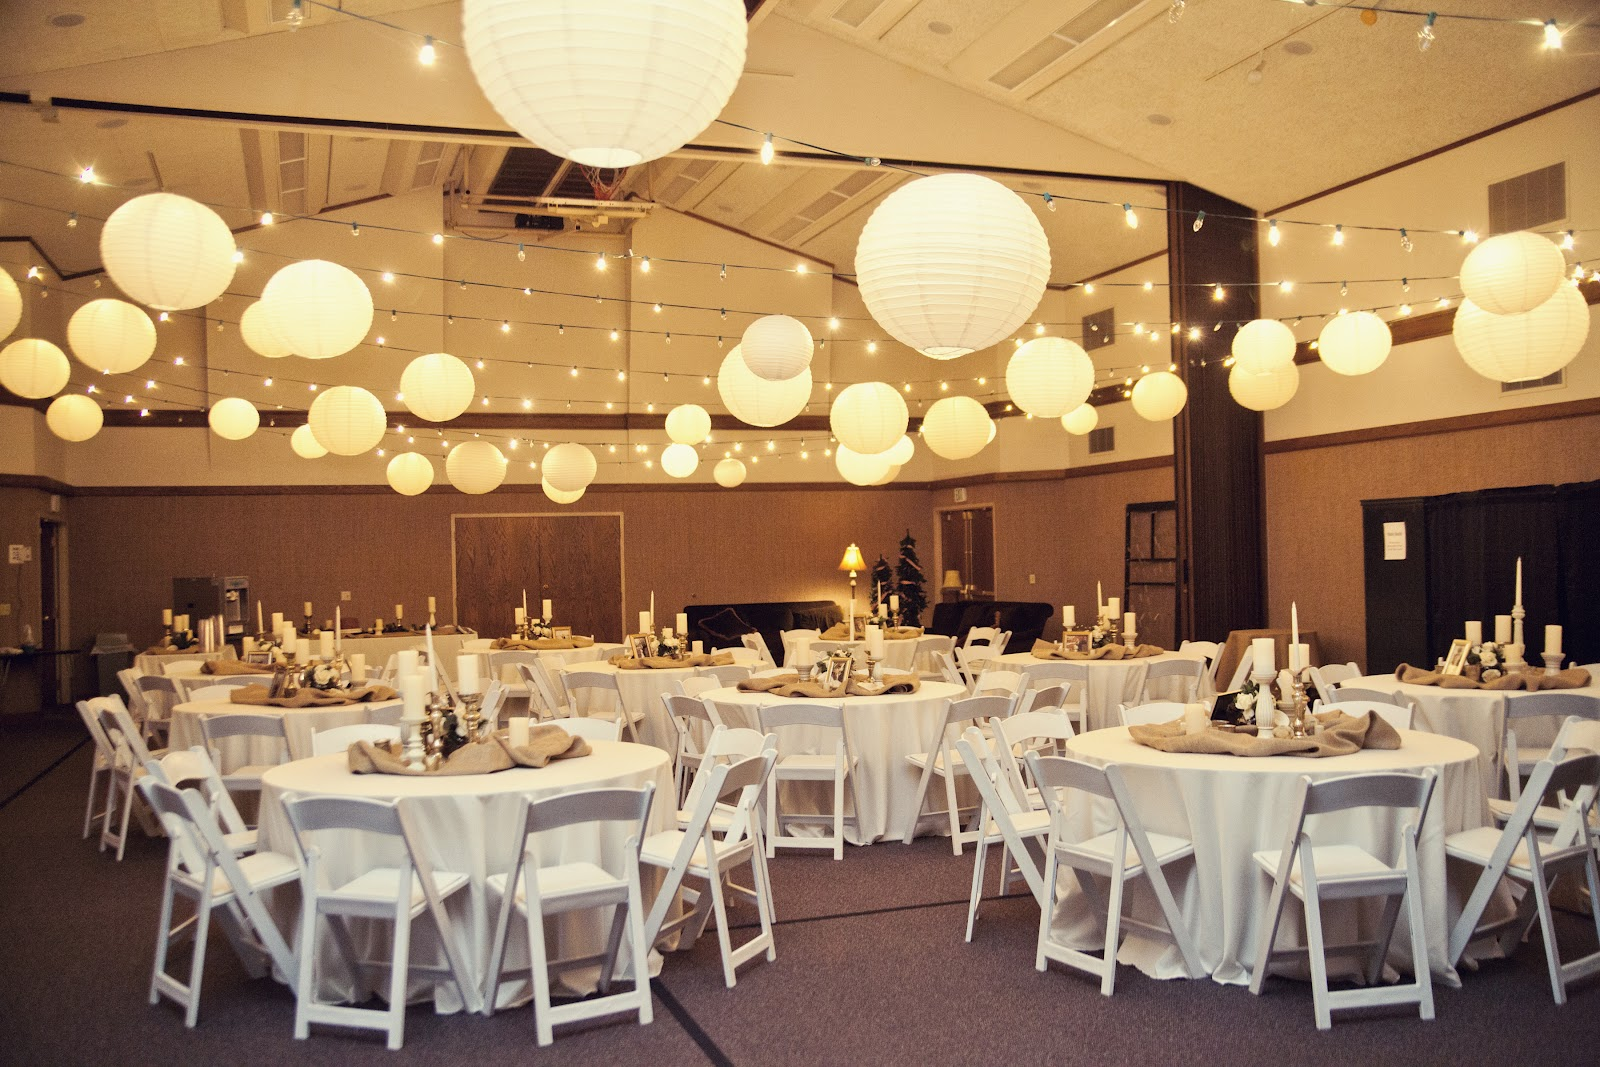 Beehive art salon wedding for Wedding reception room decoration ideas